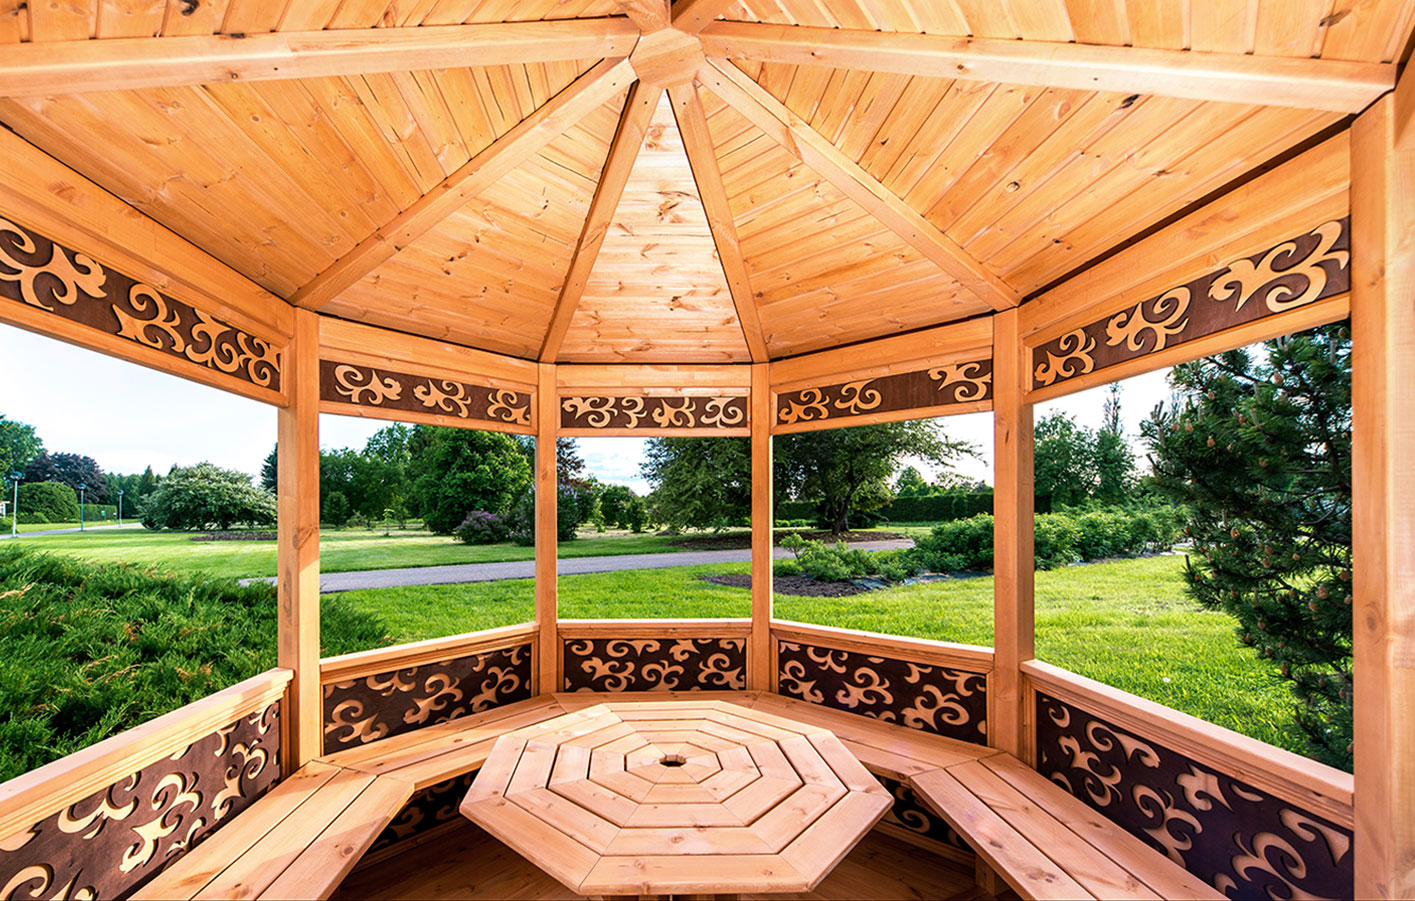 pavillon aus holz interesting pavillon mit walmdach with. Black Bedroom Furniture Sets. Home Design Ideas